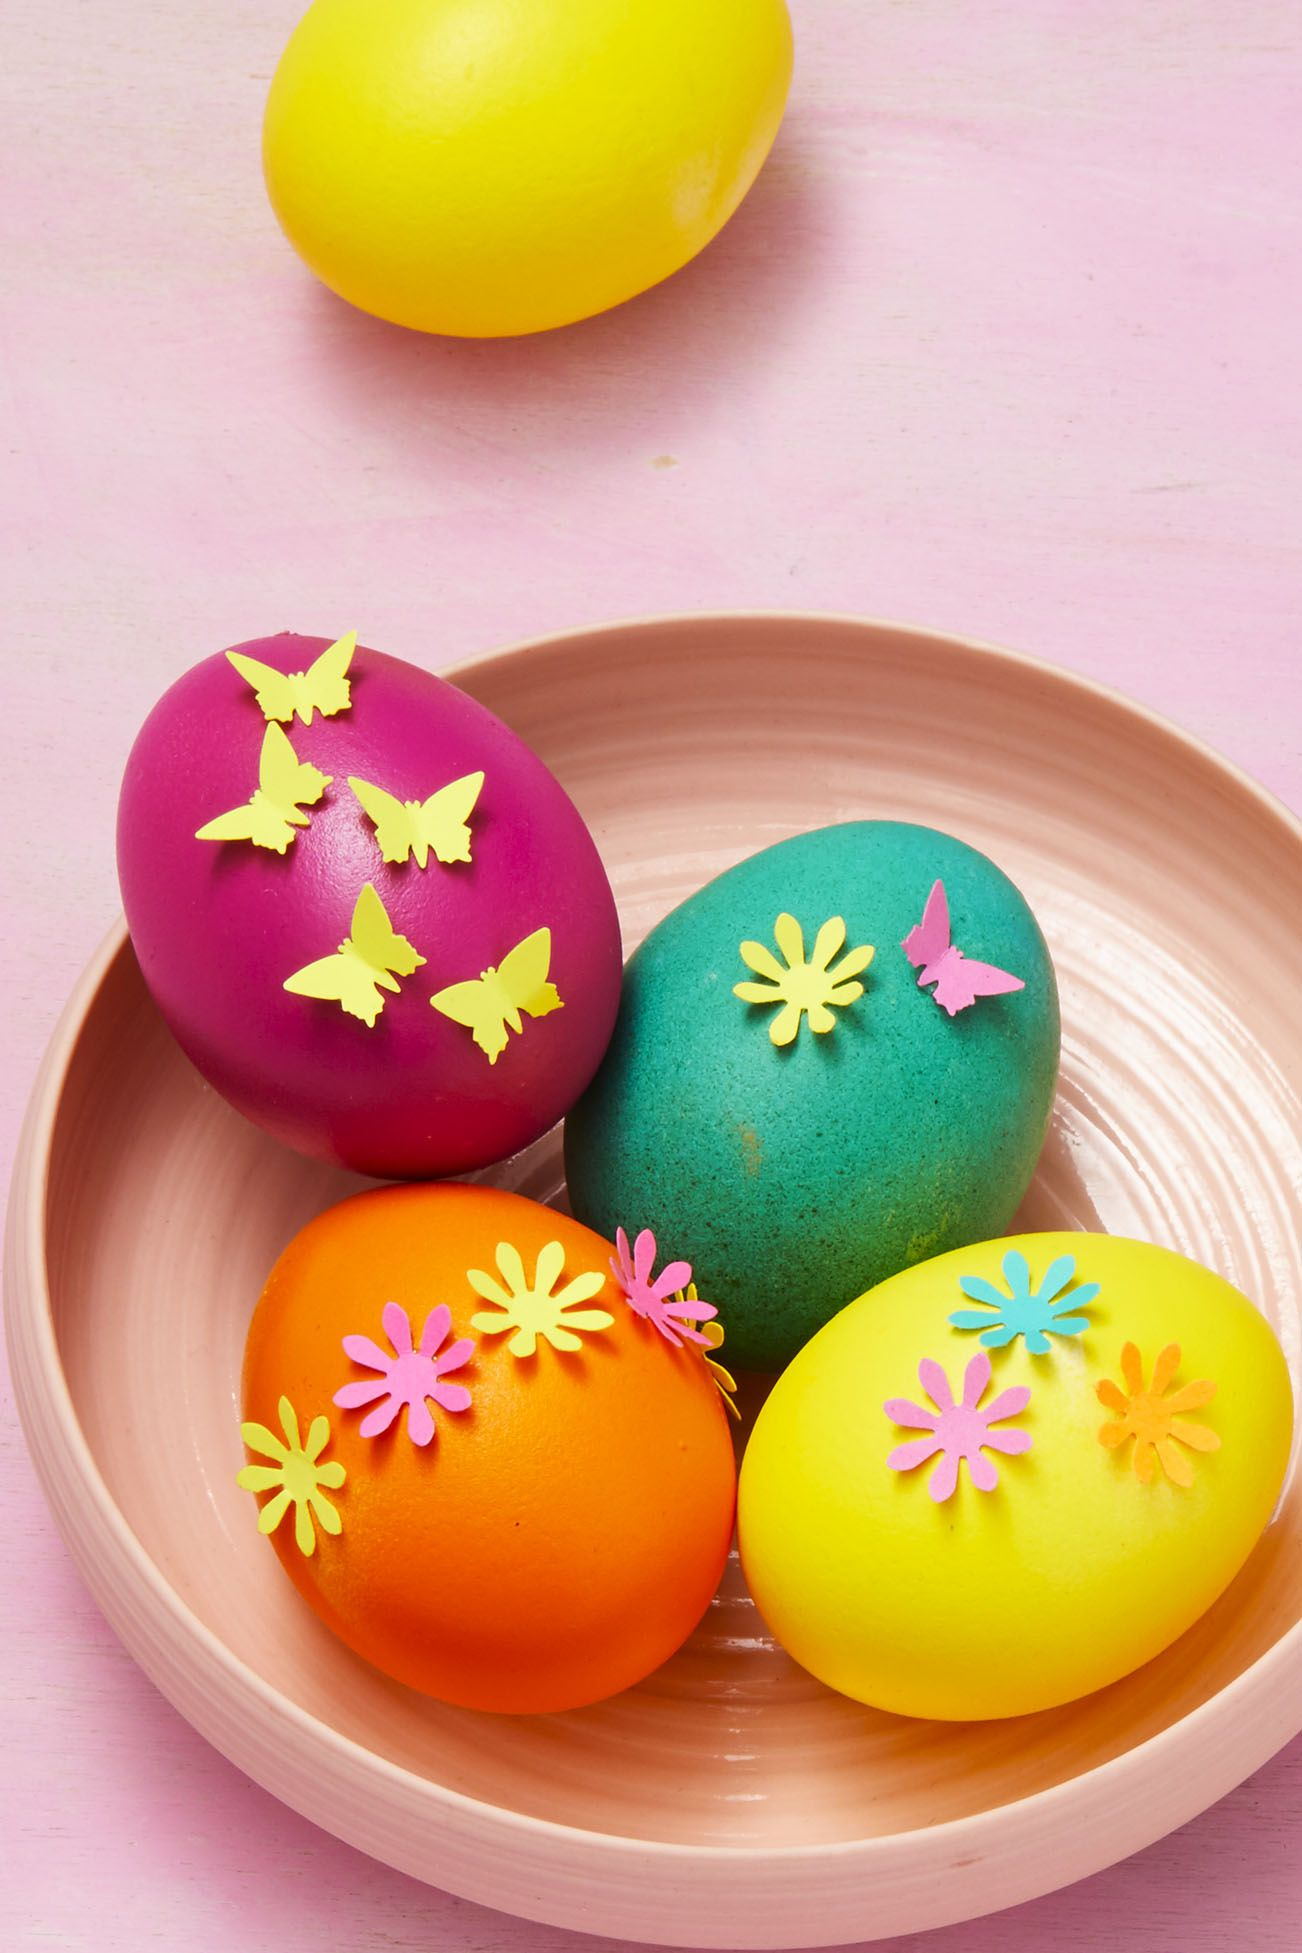 60 Best Easter Egg Designs Easy Diy Ideas For Easter Egg Decorating